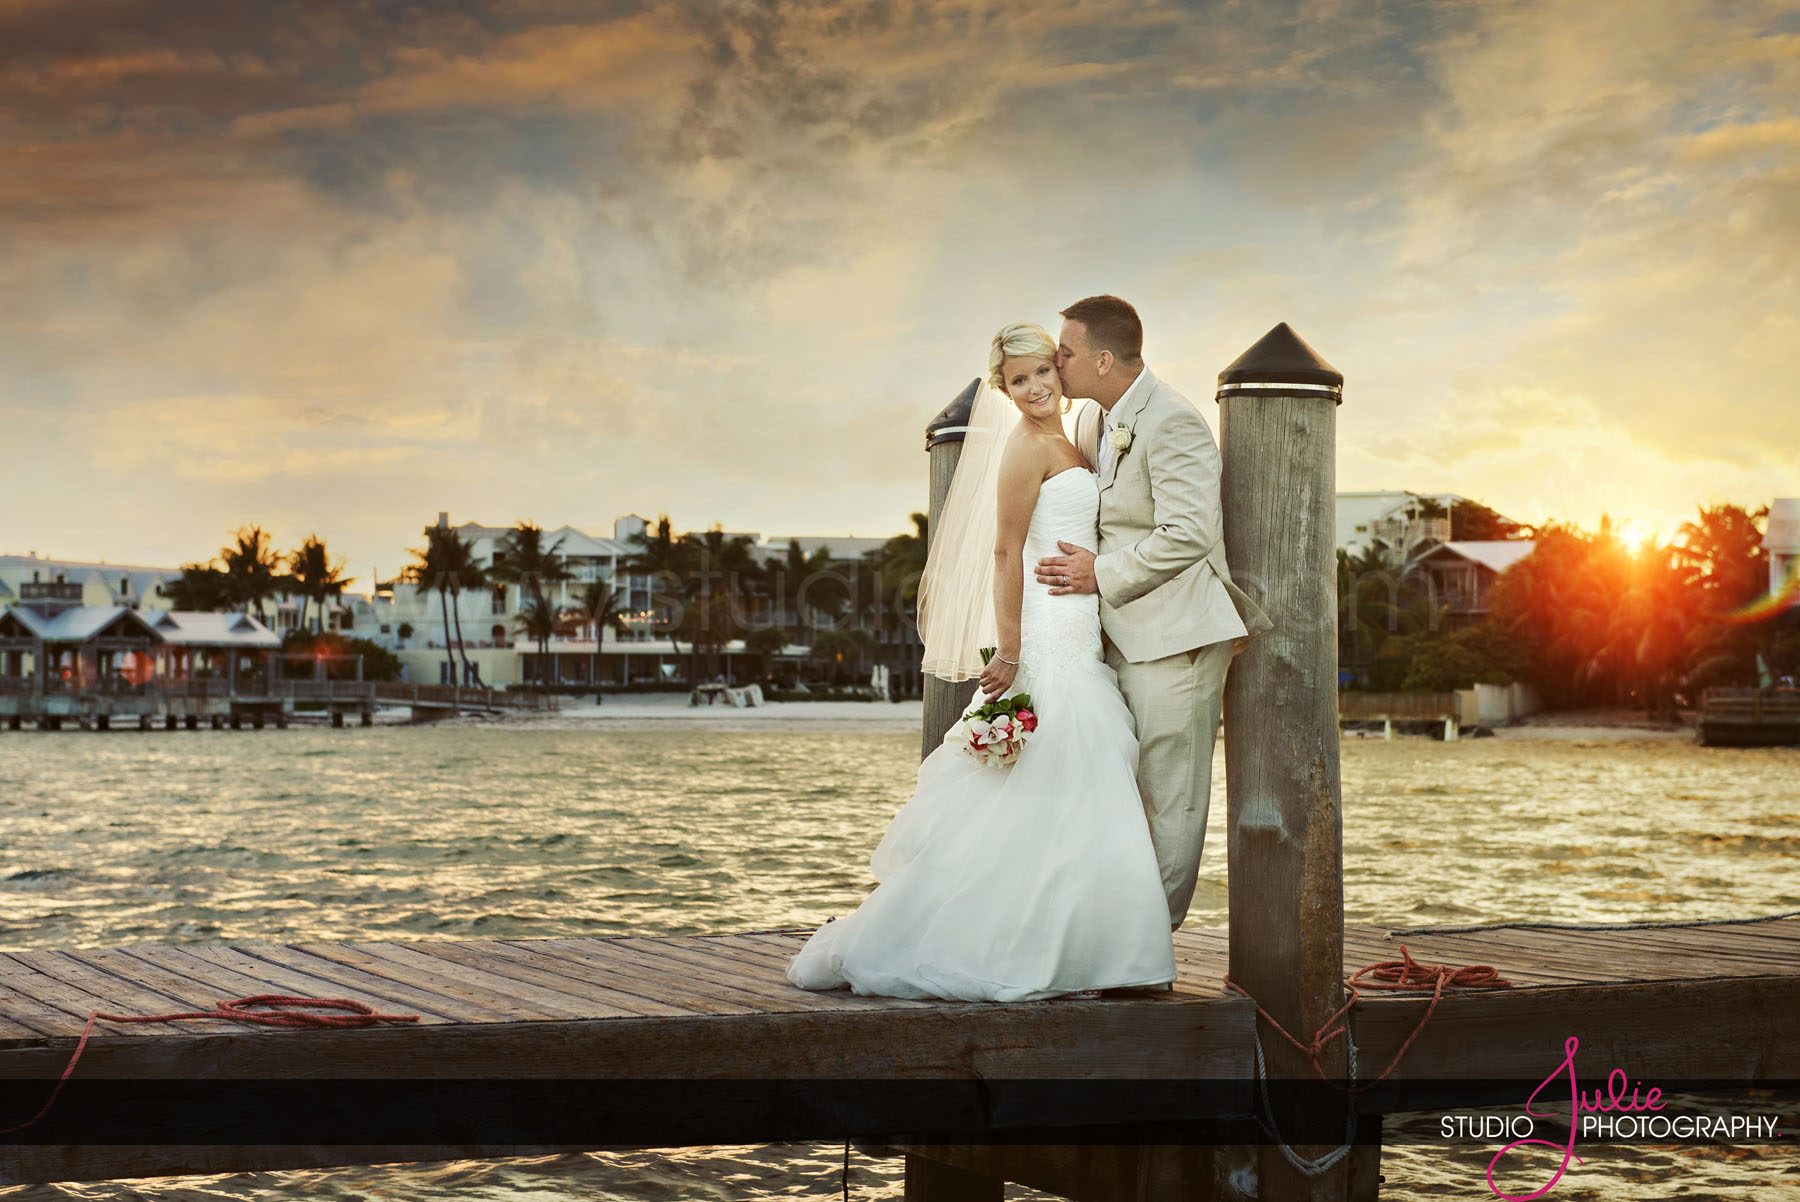 STEPHANIE + IAN | CASA MARINA RESORT WEDDINGS